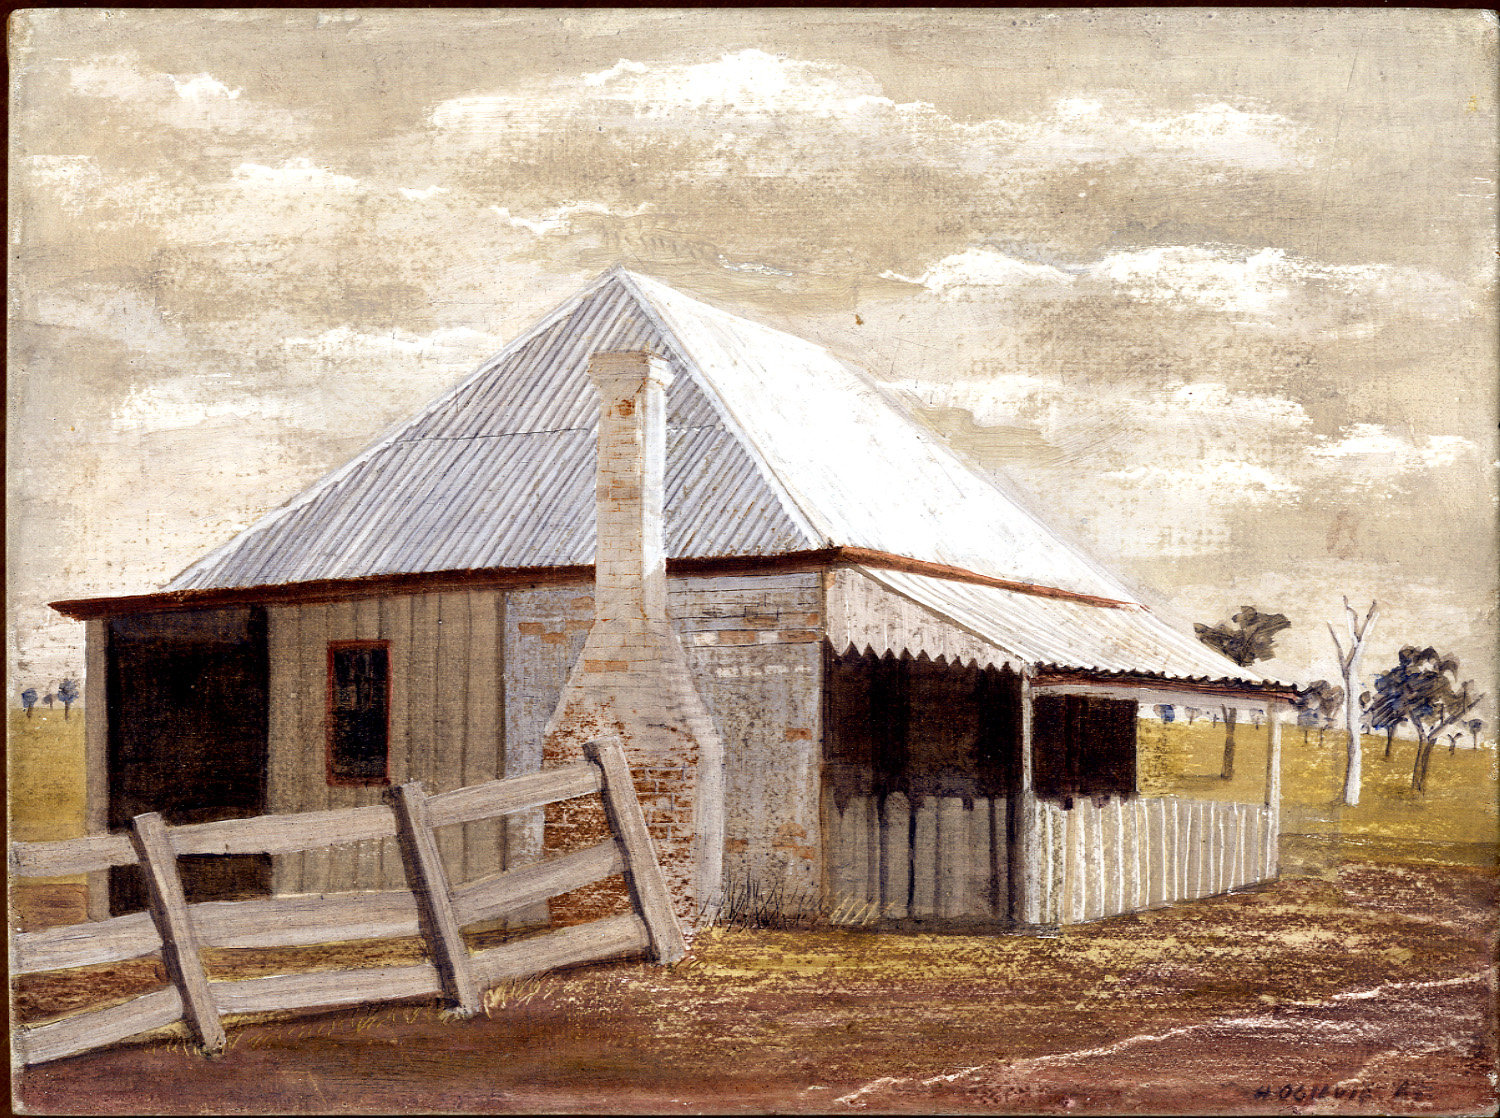 'Drover's cottage, NewSouth Wales'